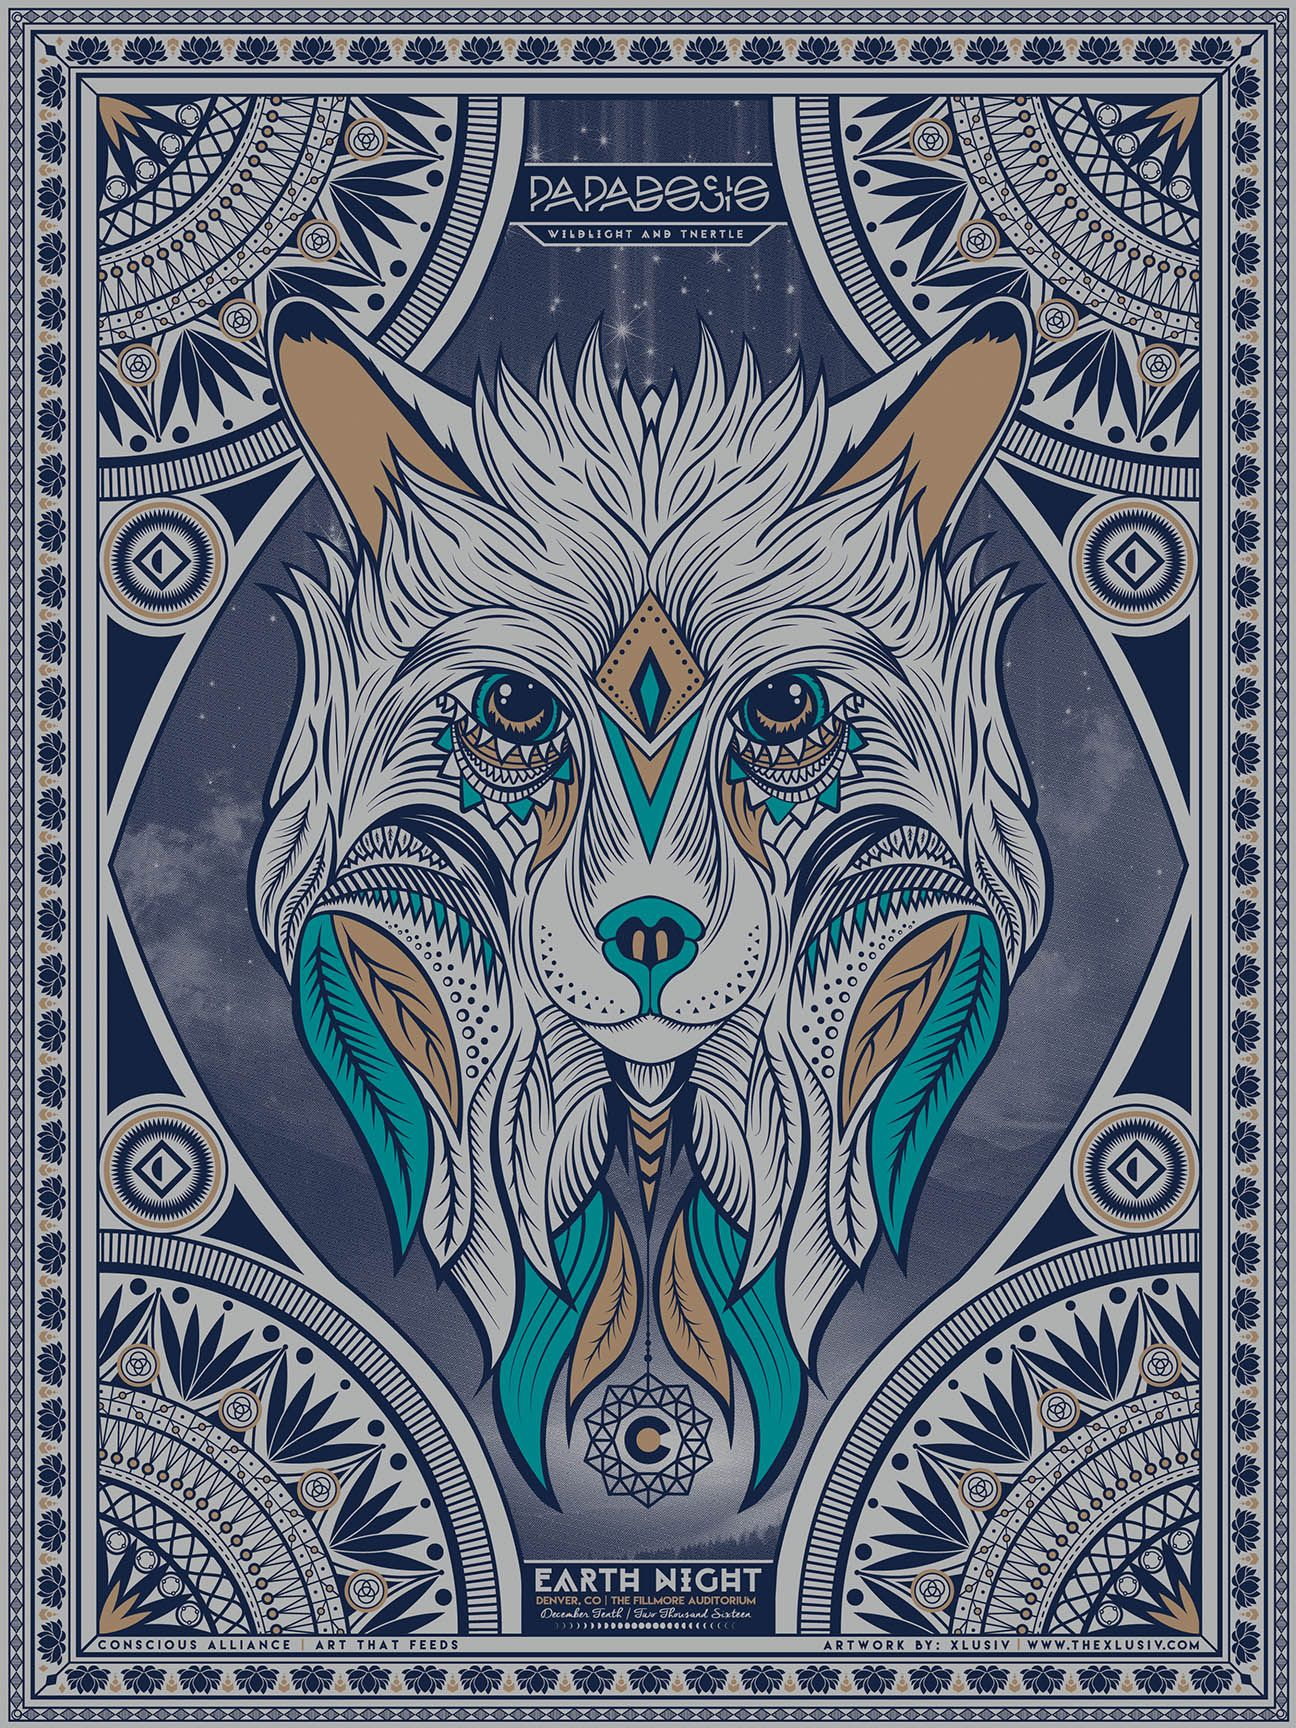 Screen Print Poster. Collaboration with Papadosio, Conscience Alliance, and XLUSIV to bring you this 3 color screen print poster. 18x24  Sacred Geometry Illustration with a Wolf and artistic border. Starry Night and trees in the halftone images. Leaves and feathers in the wolfs face.